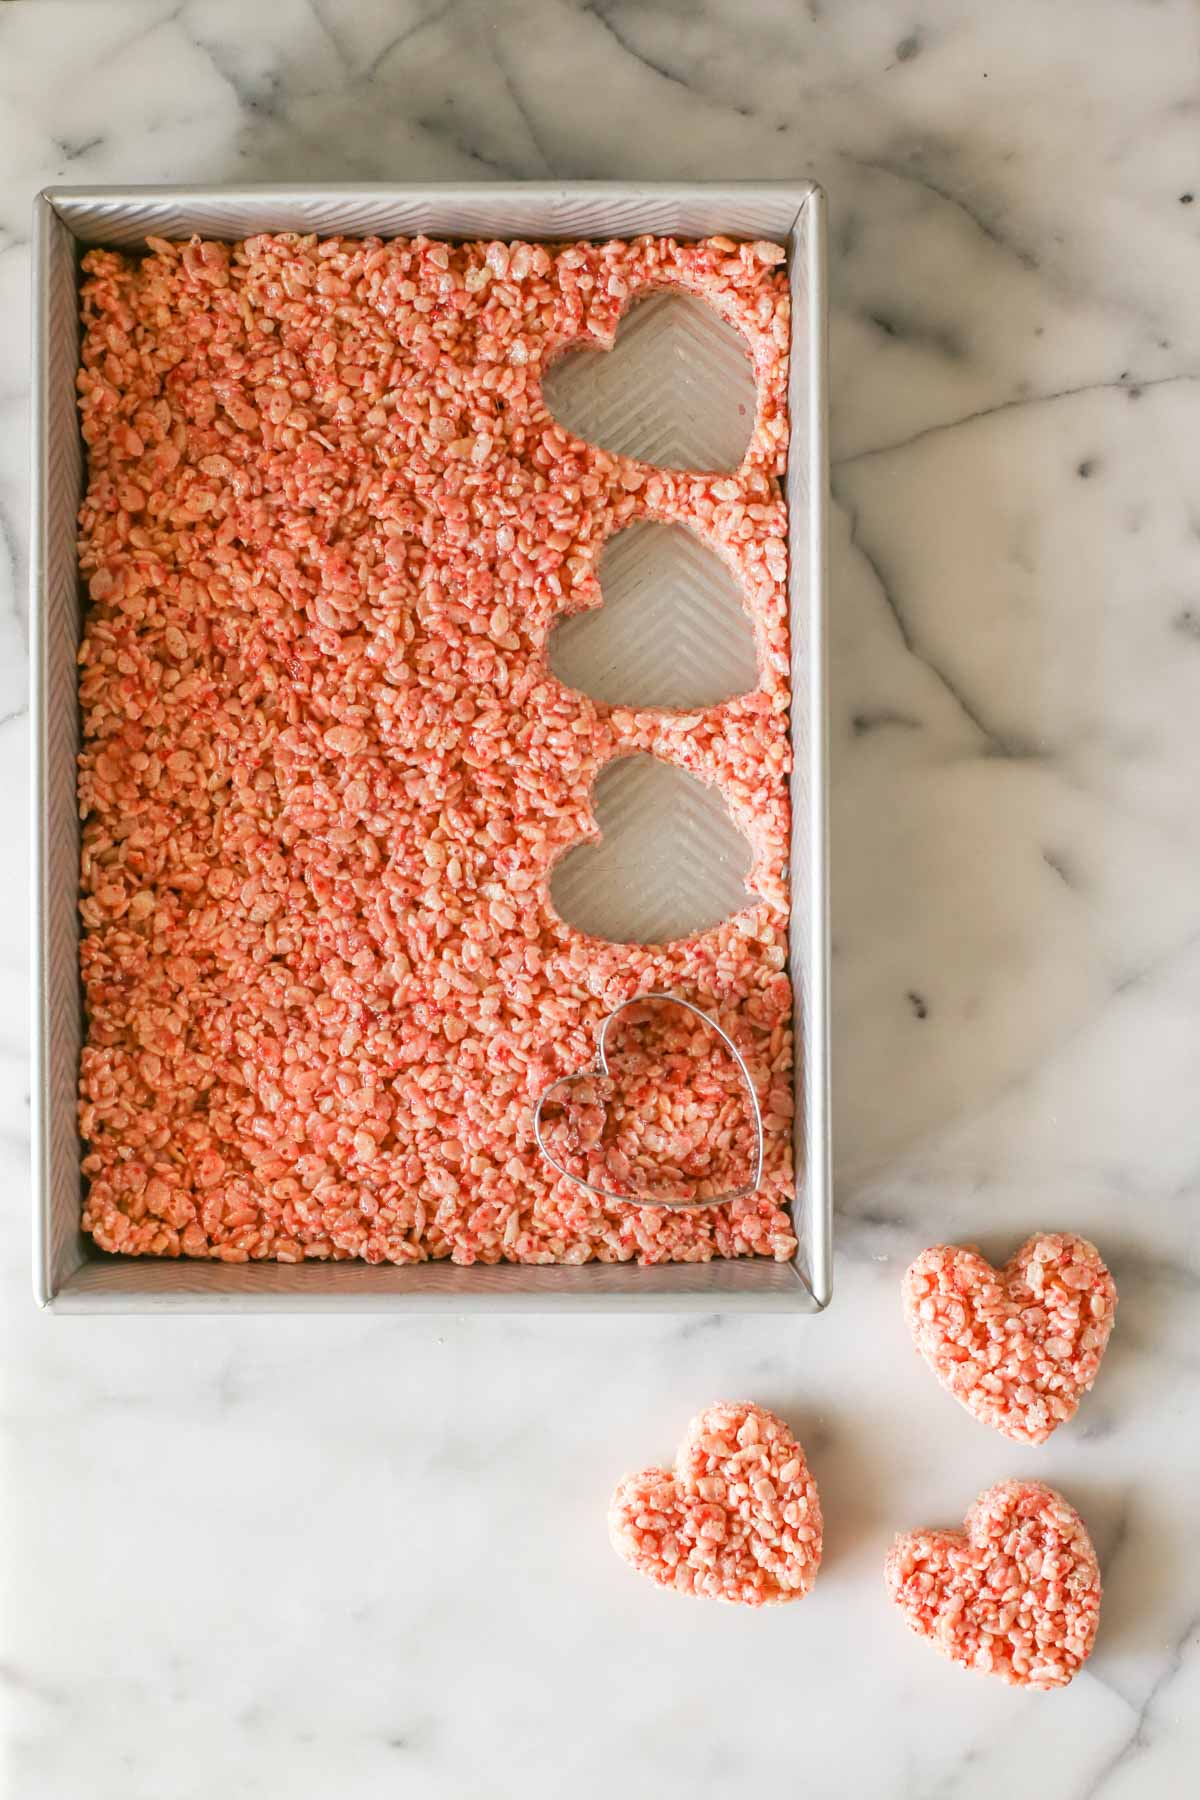 Overhead shot of a pan of Strawberry Rice Krispie Treats with a heart shaped cutter in the pan with three hearts already cut out and laying next to the pan, all on a marble background.